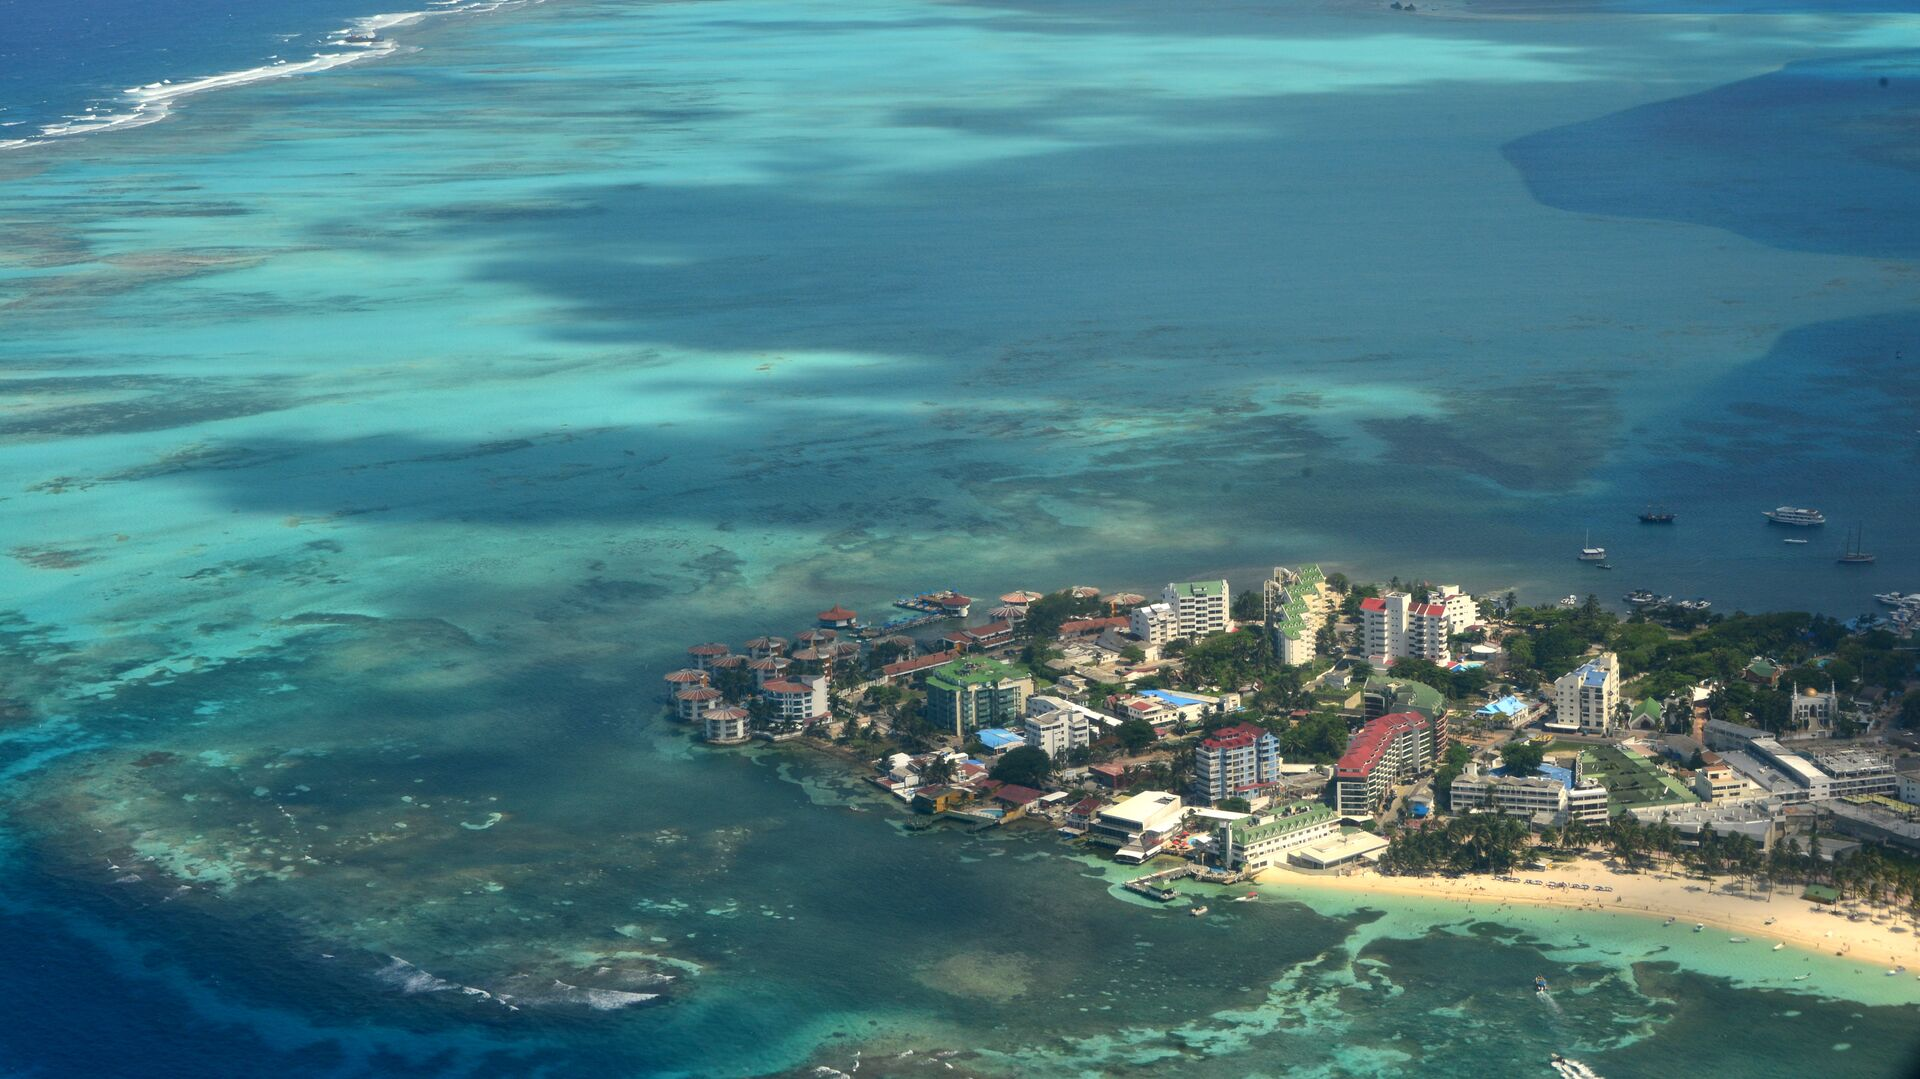 Aereal view of San Andres Island, Colombia on September 5, 2013.  - Sputnik Mundo, 1920, 14.09.2021